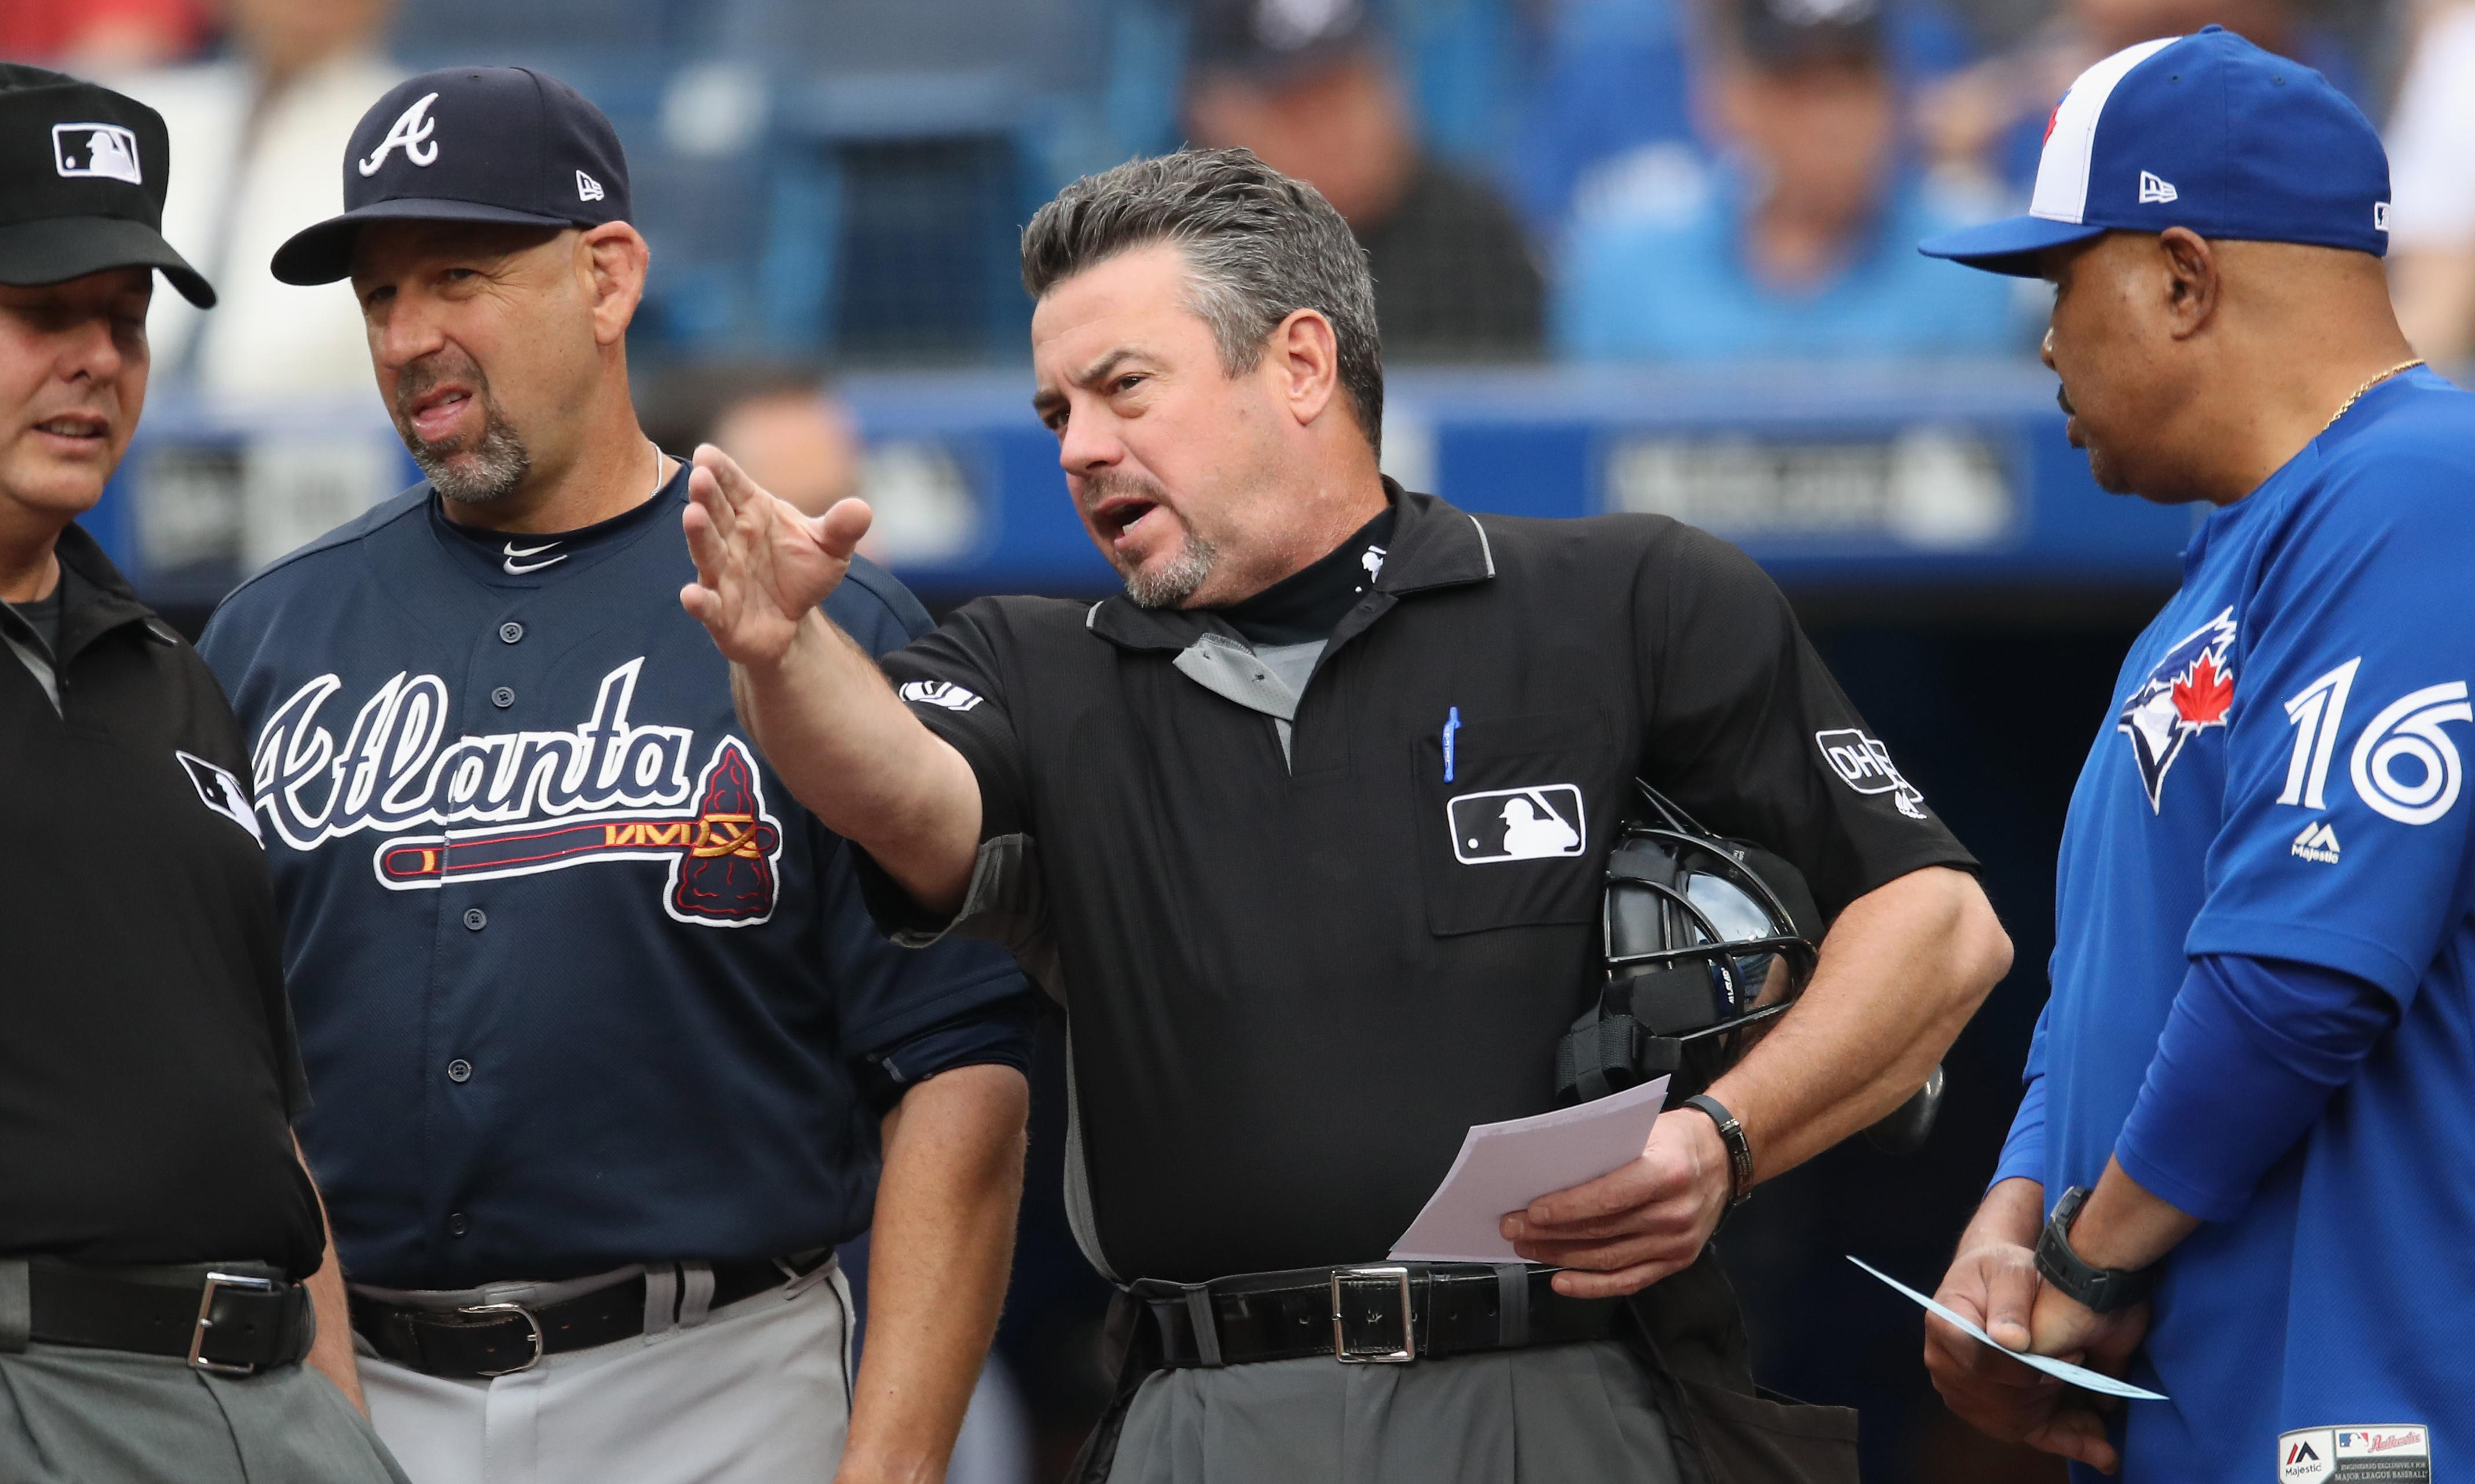 MLB looking into umpire's tweet calling for 'CIVAL WAR' if Trump is impeached